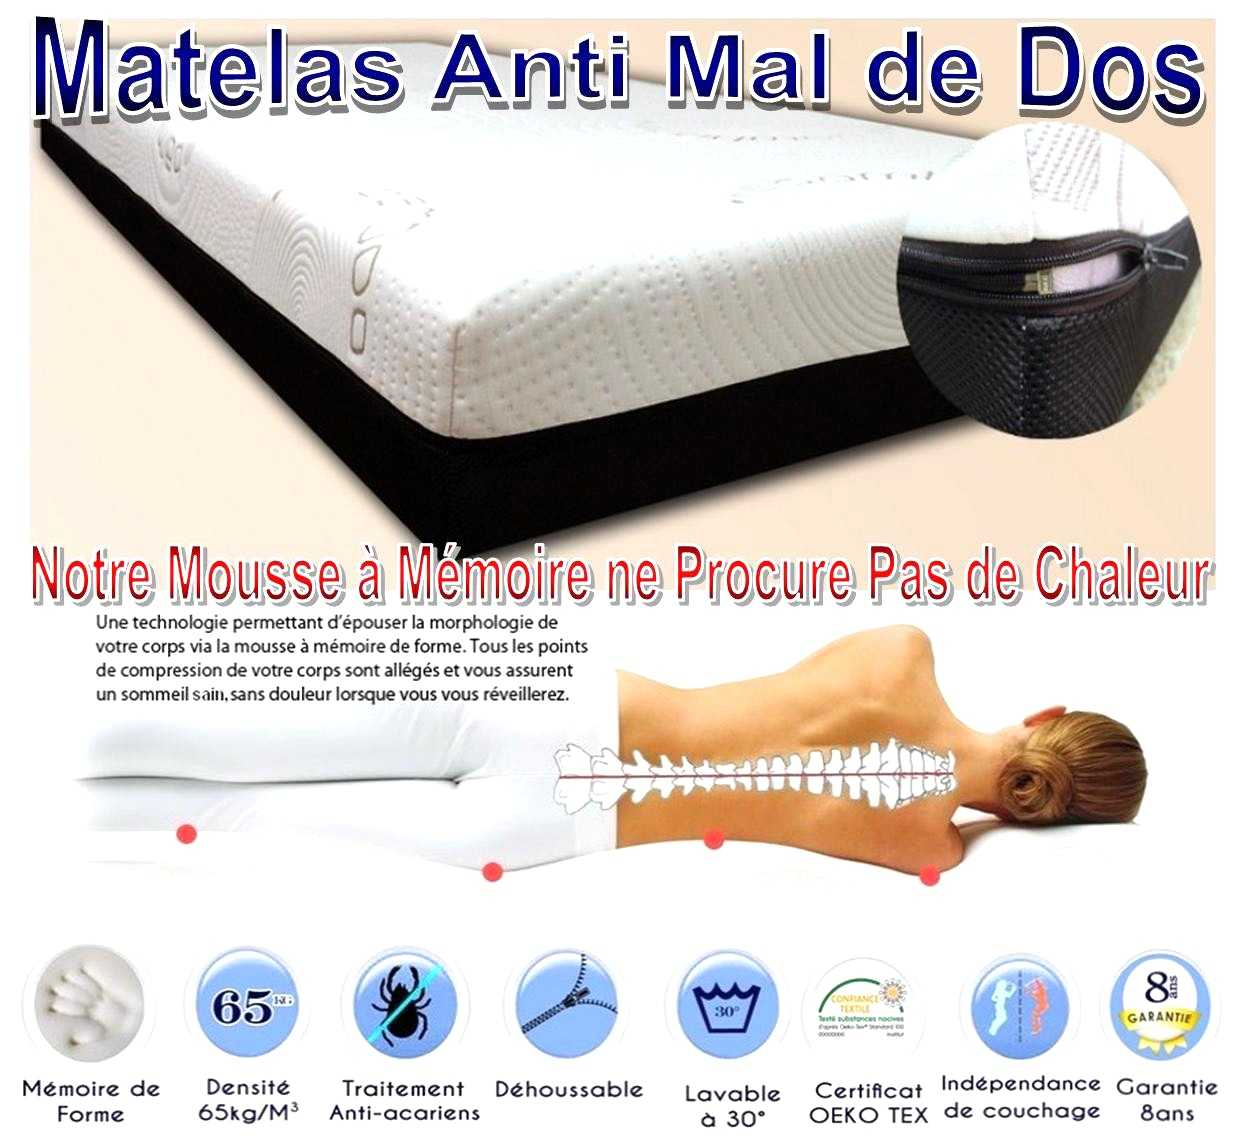 comment choisir un matelas id es de d coration int rieure french decor. Black Bedroom Furniture Sets. Home Design Ideas